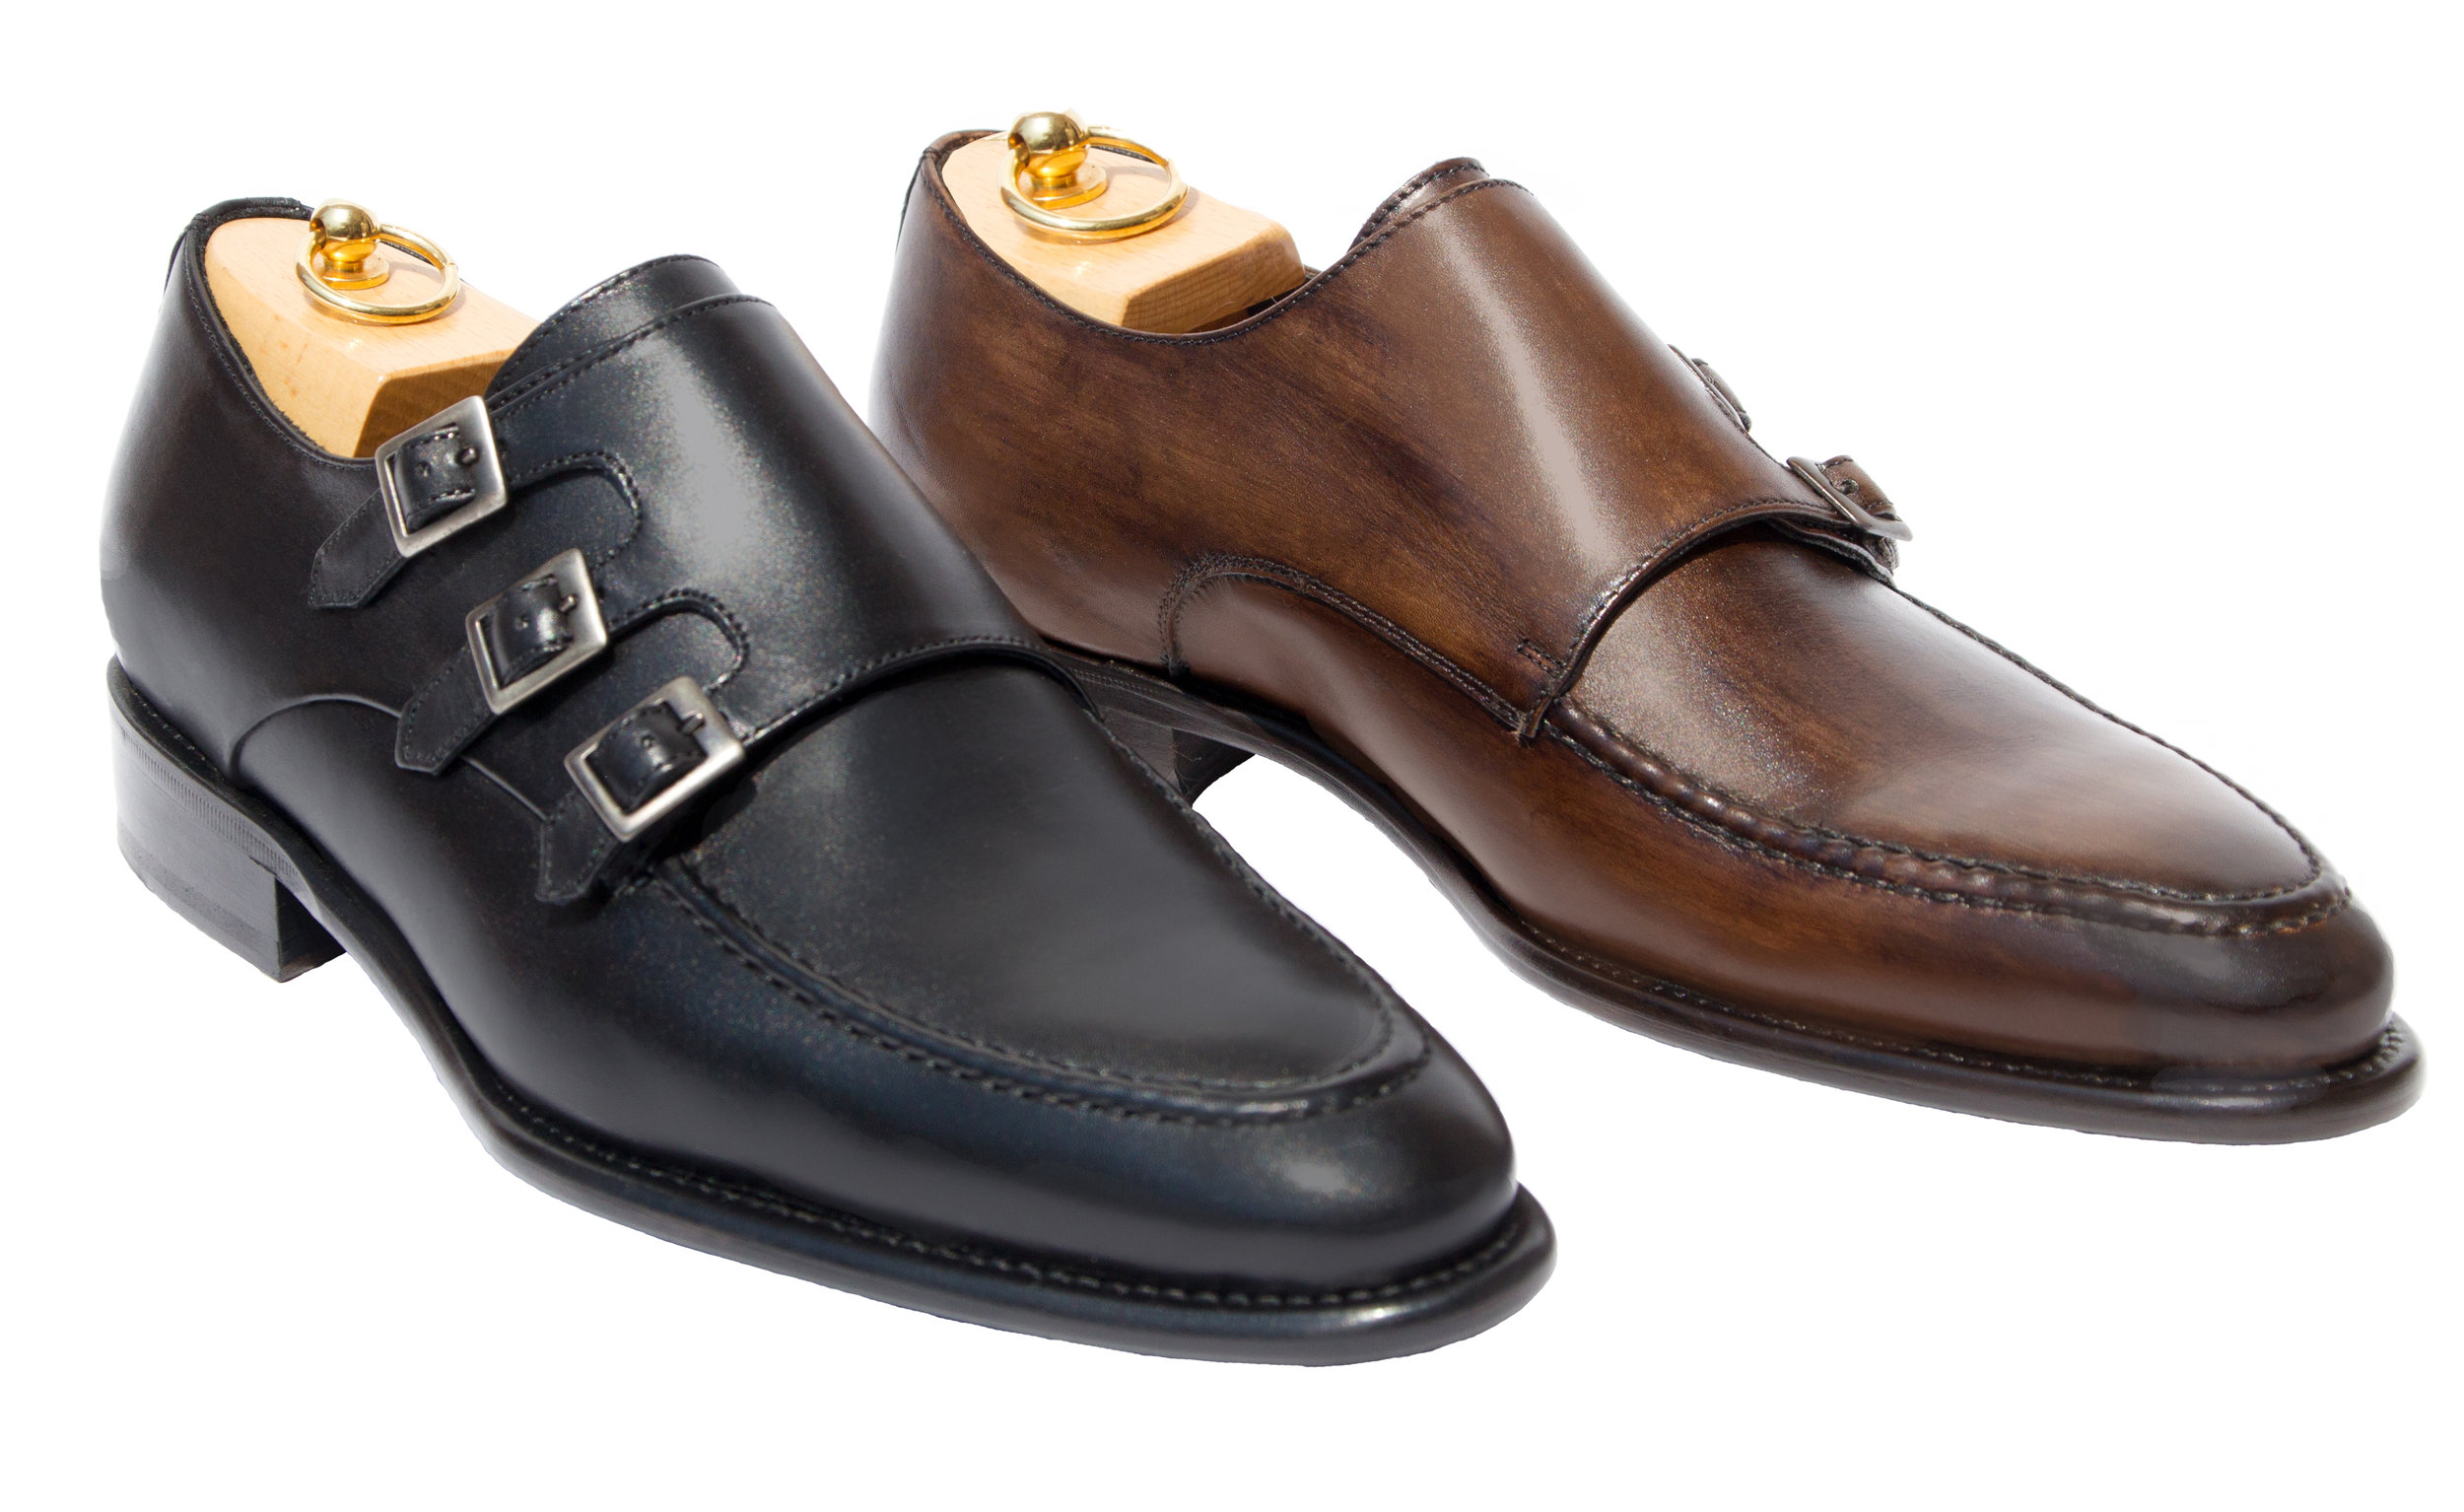 Style # H609: Black, Brown  Hand-painted Cayenne Calf Triple Monk Strap  Sizes available: 7 to 14 US, including half sizes